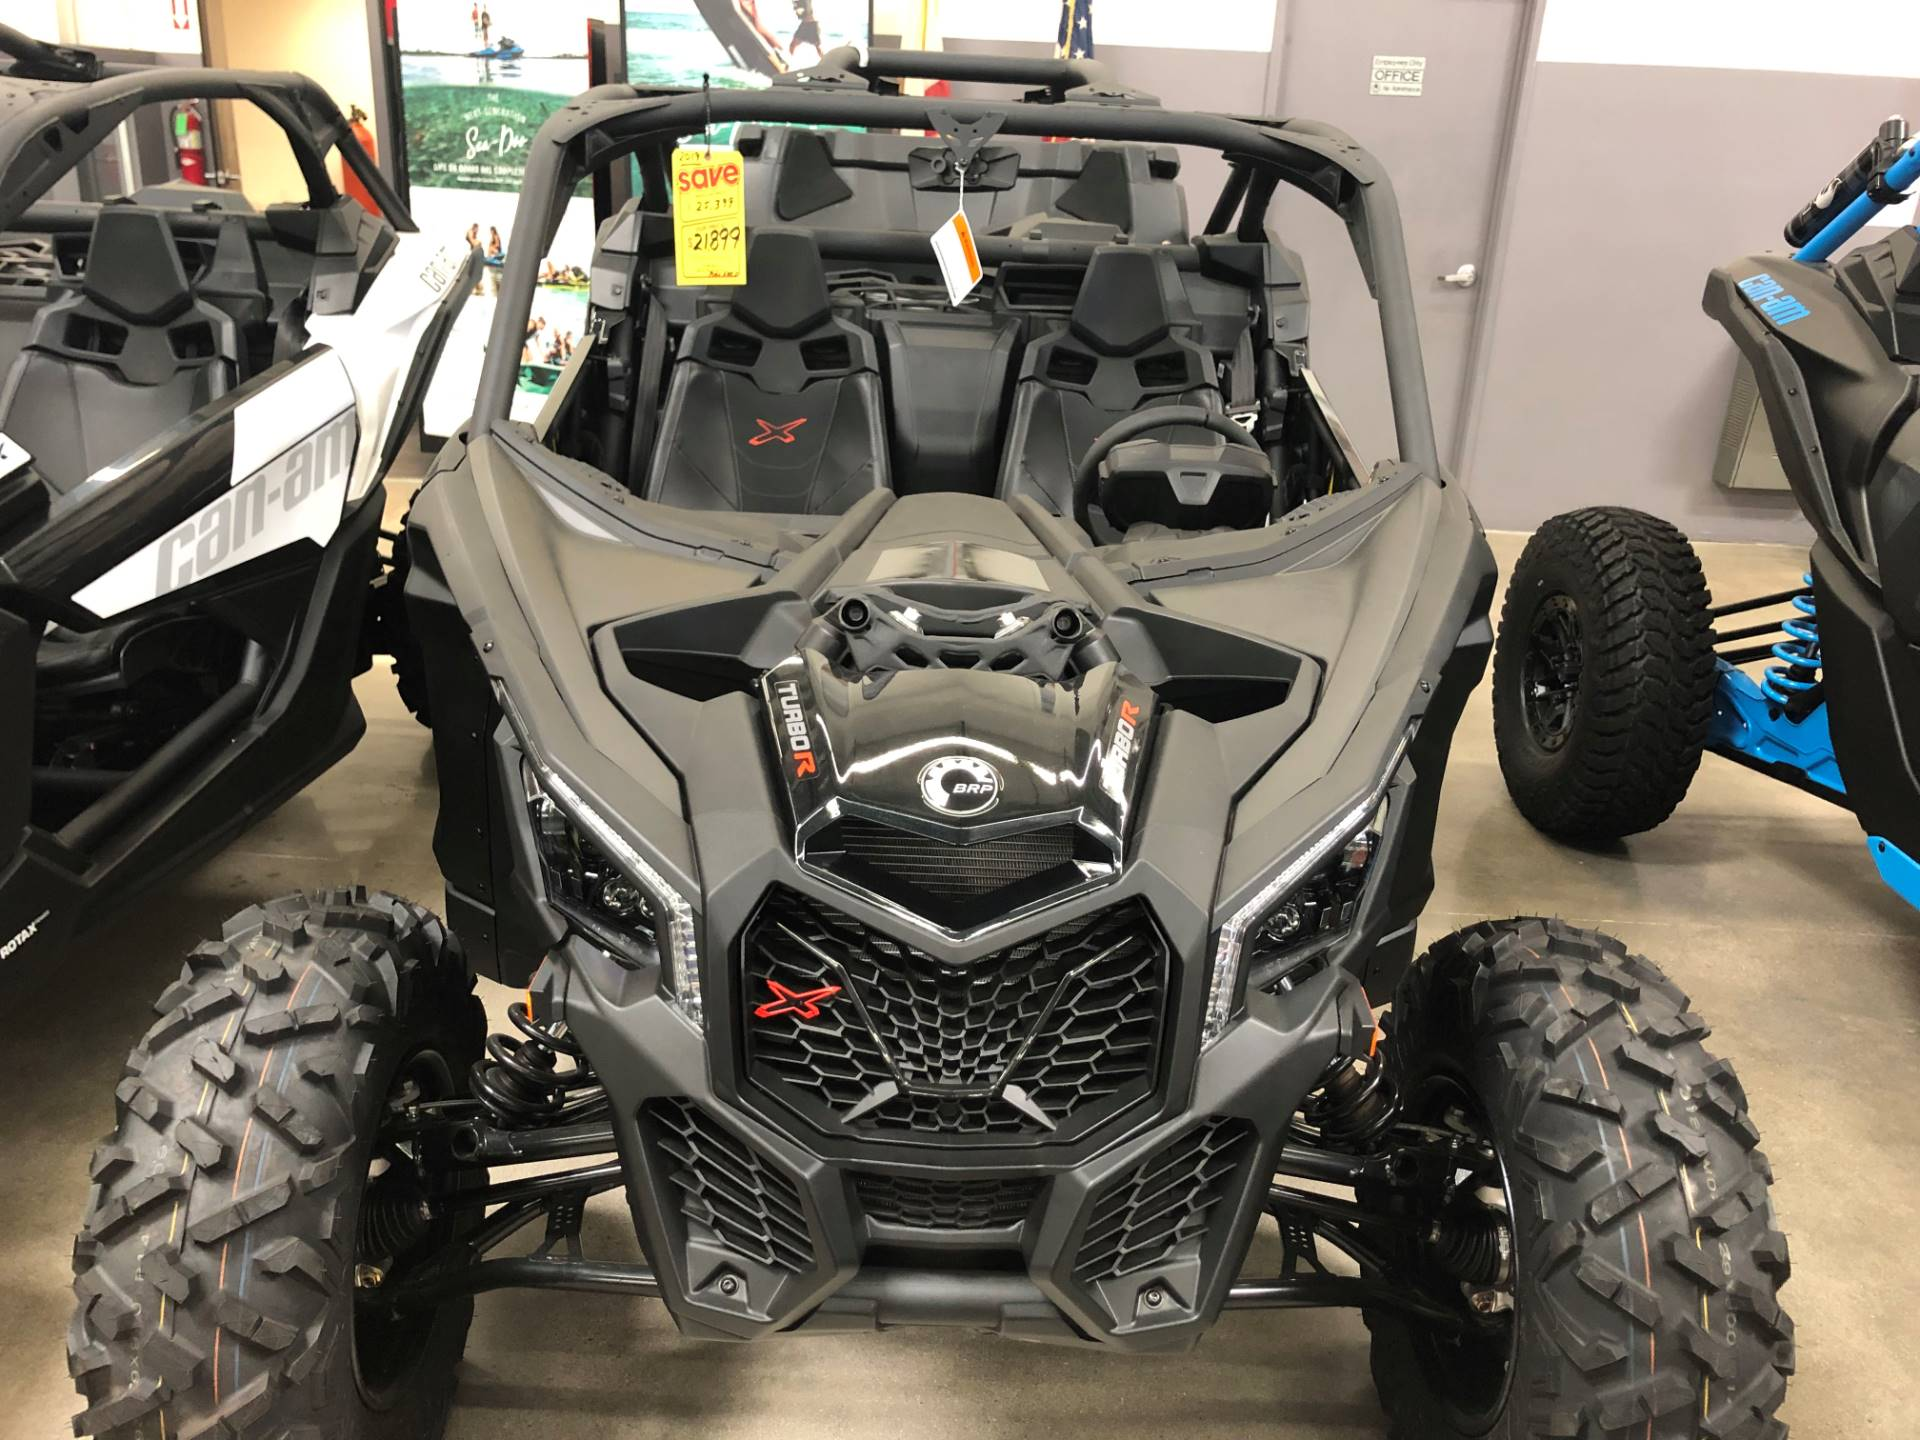 2019 Can-Am Maverick X3 X ds Turbo R in Corona, California - Photo 1